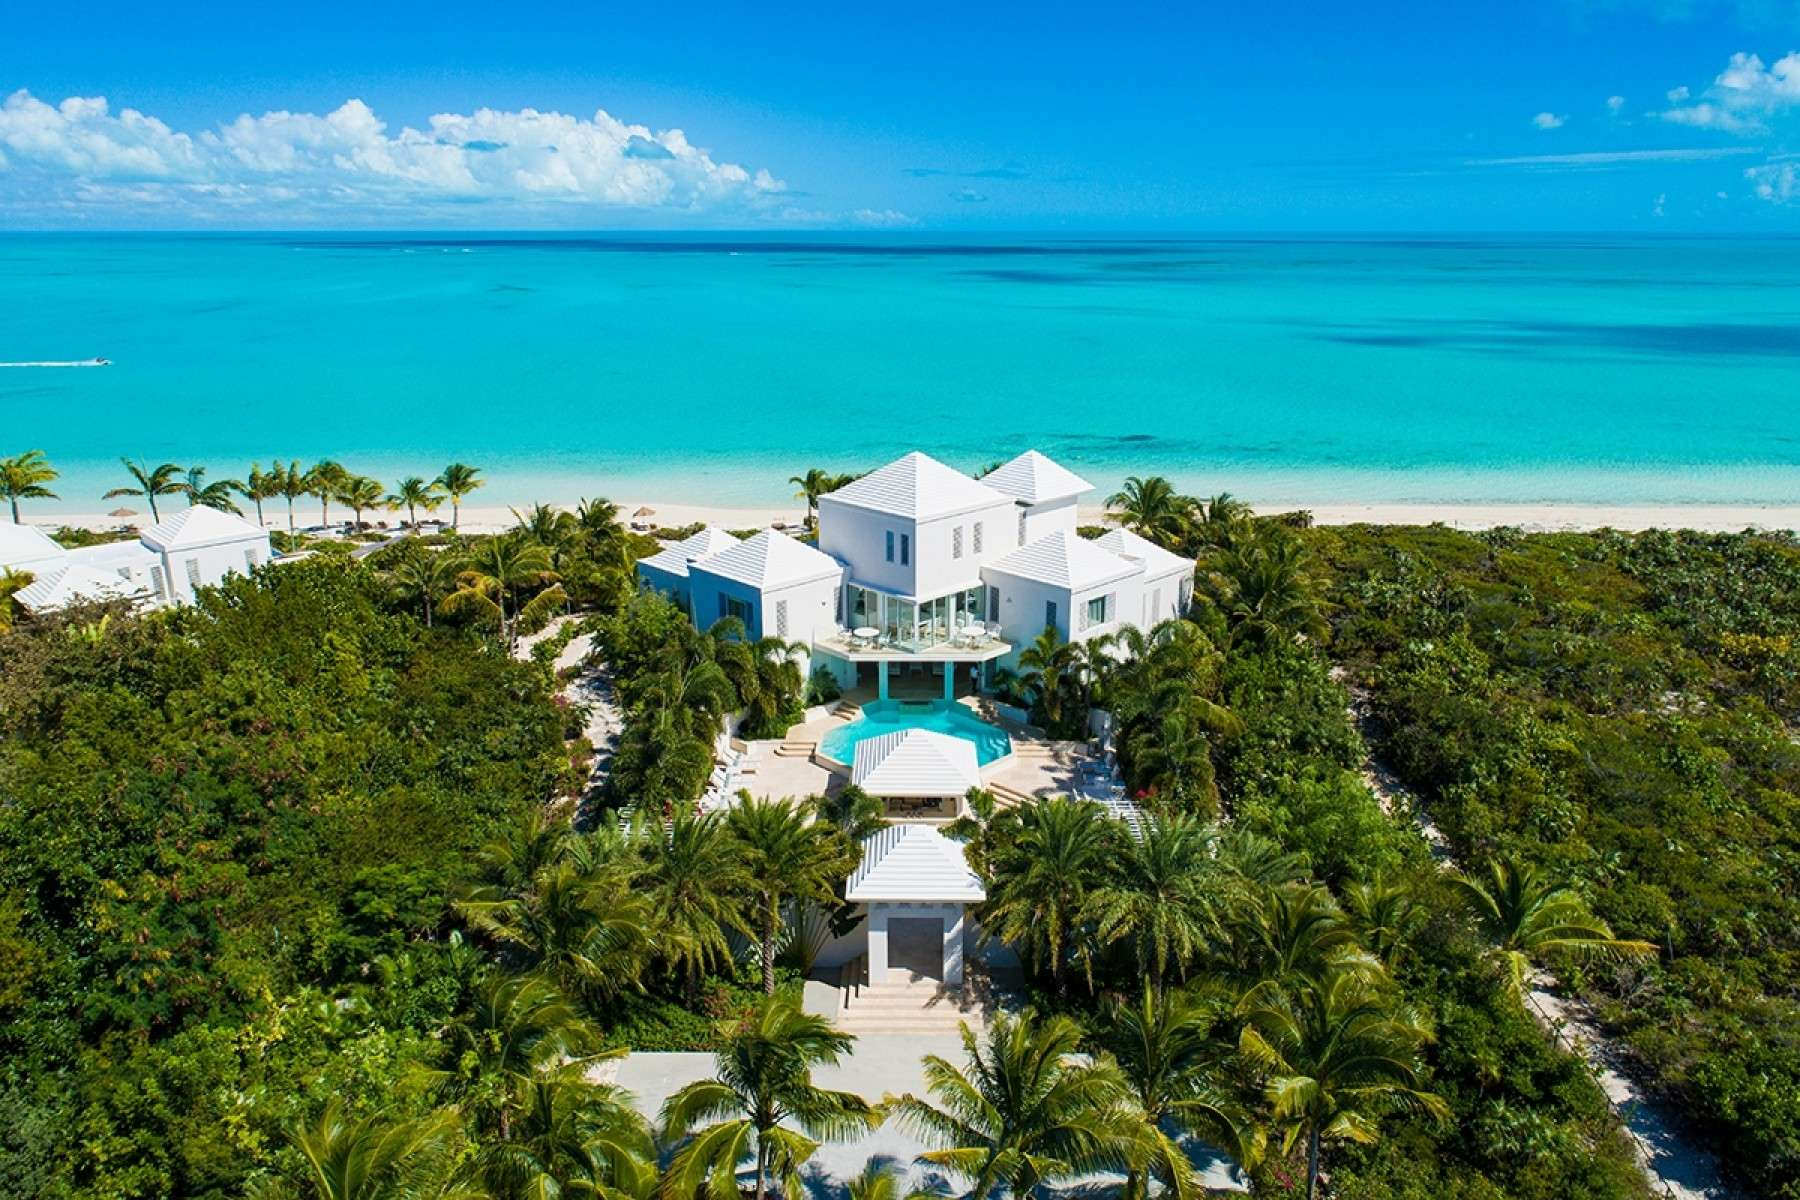 Luxury villa rentals caribbean - Turks and caicos - Providenciales - Long bay - East Pearl House - Image 1/12